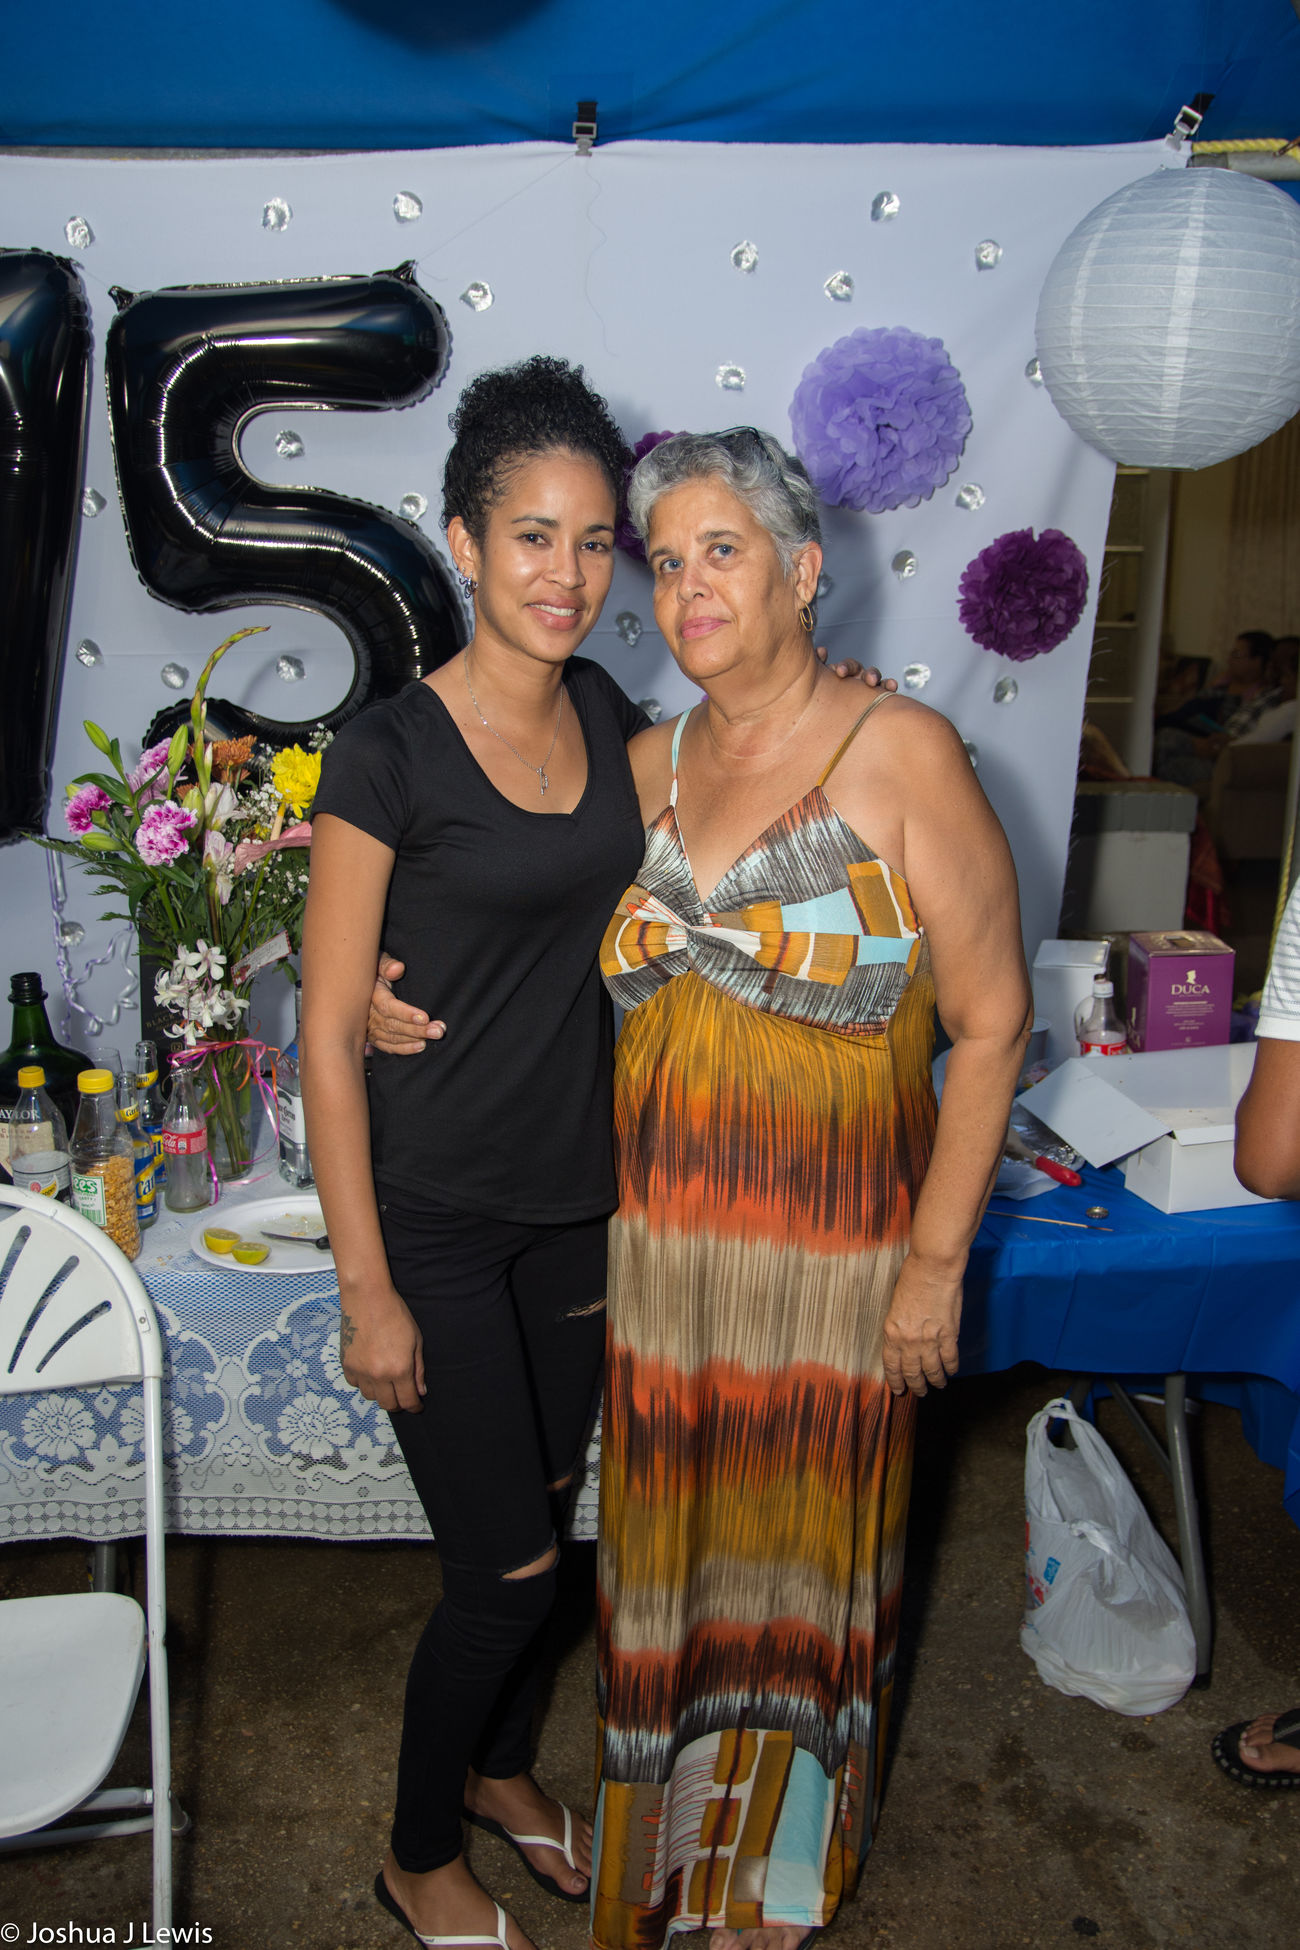 Togetherness Casual Clothing Looking At Camera Birthdayparty Beautiful People Stillife Laughing Caribbean Trinidad And Tobago Beautiful Love Real People Party - Social Event Celebration Happiness FamilyTime Smiling Food And Drink